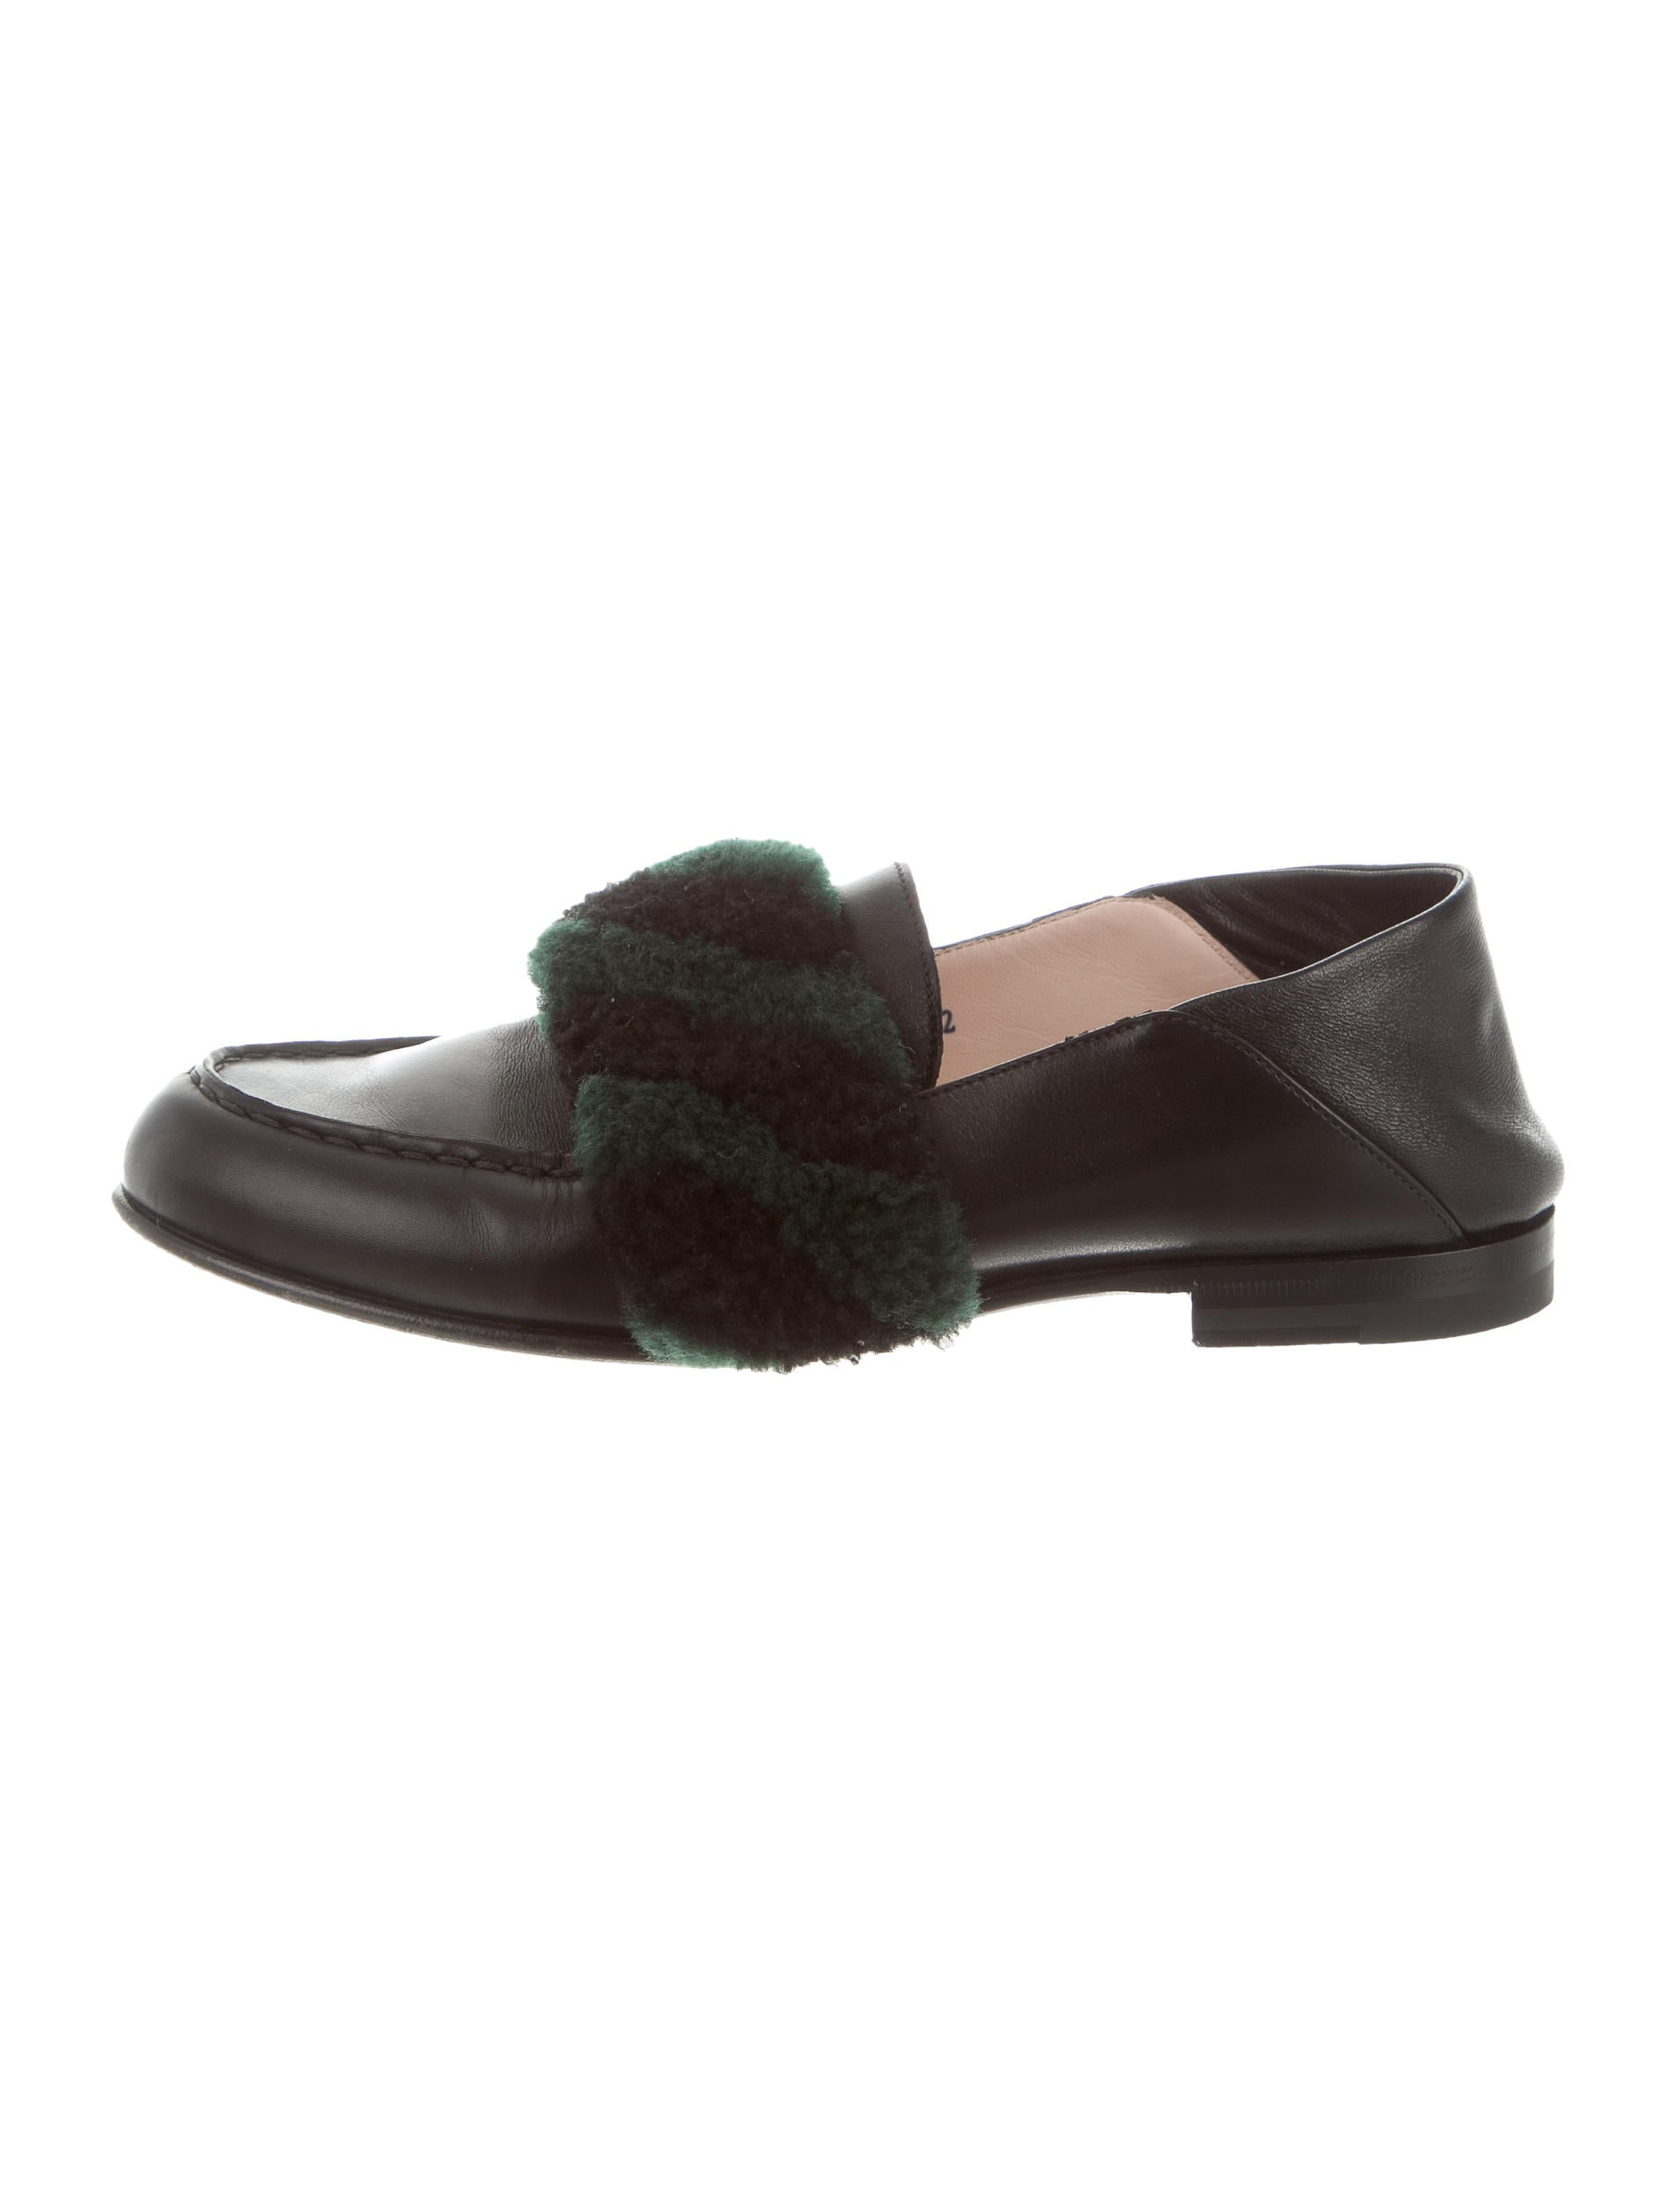 Fendi 2017 Fur-Accented Leather Loafers buy cheap recommend iVmGfDJ2